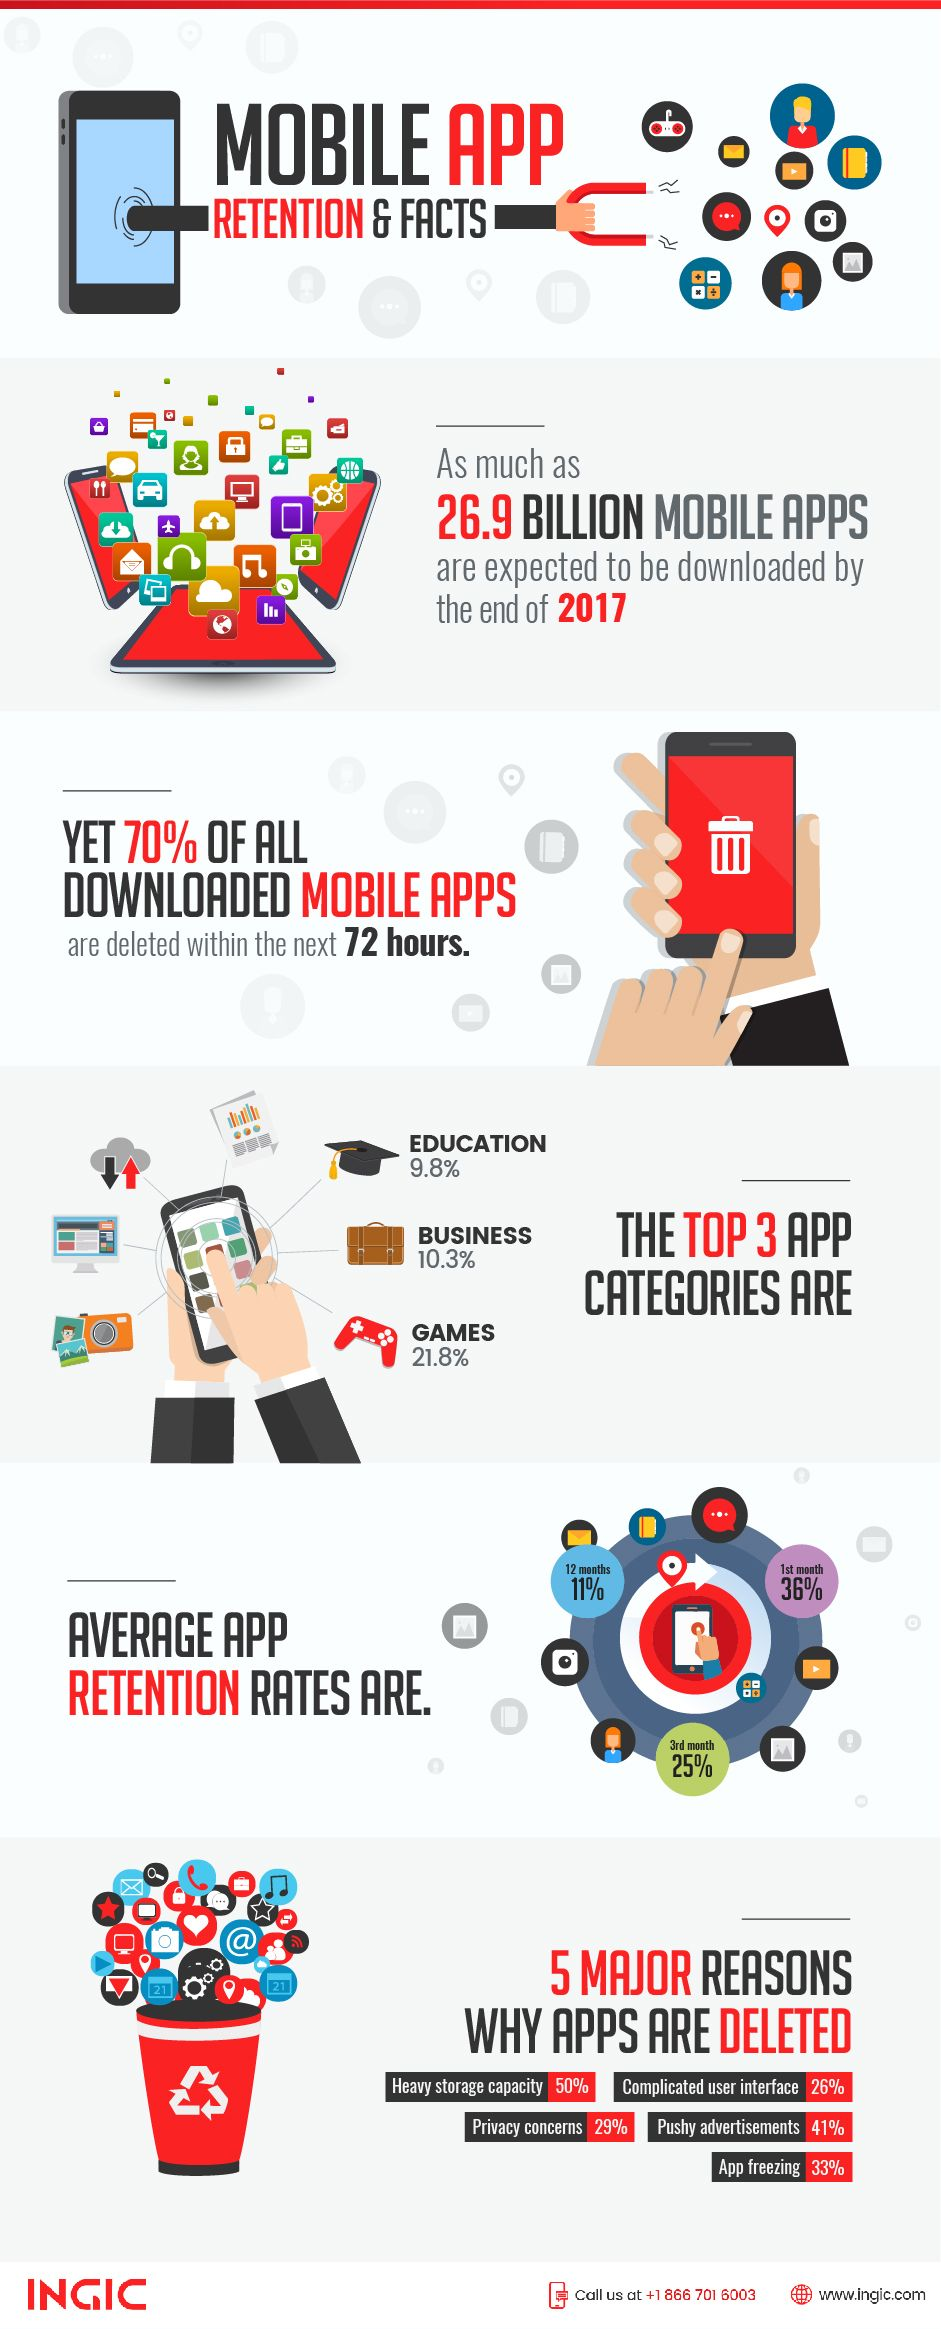 Mobile app retention statistics and facts. Mobile app